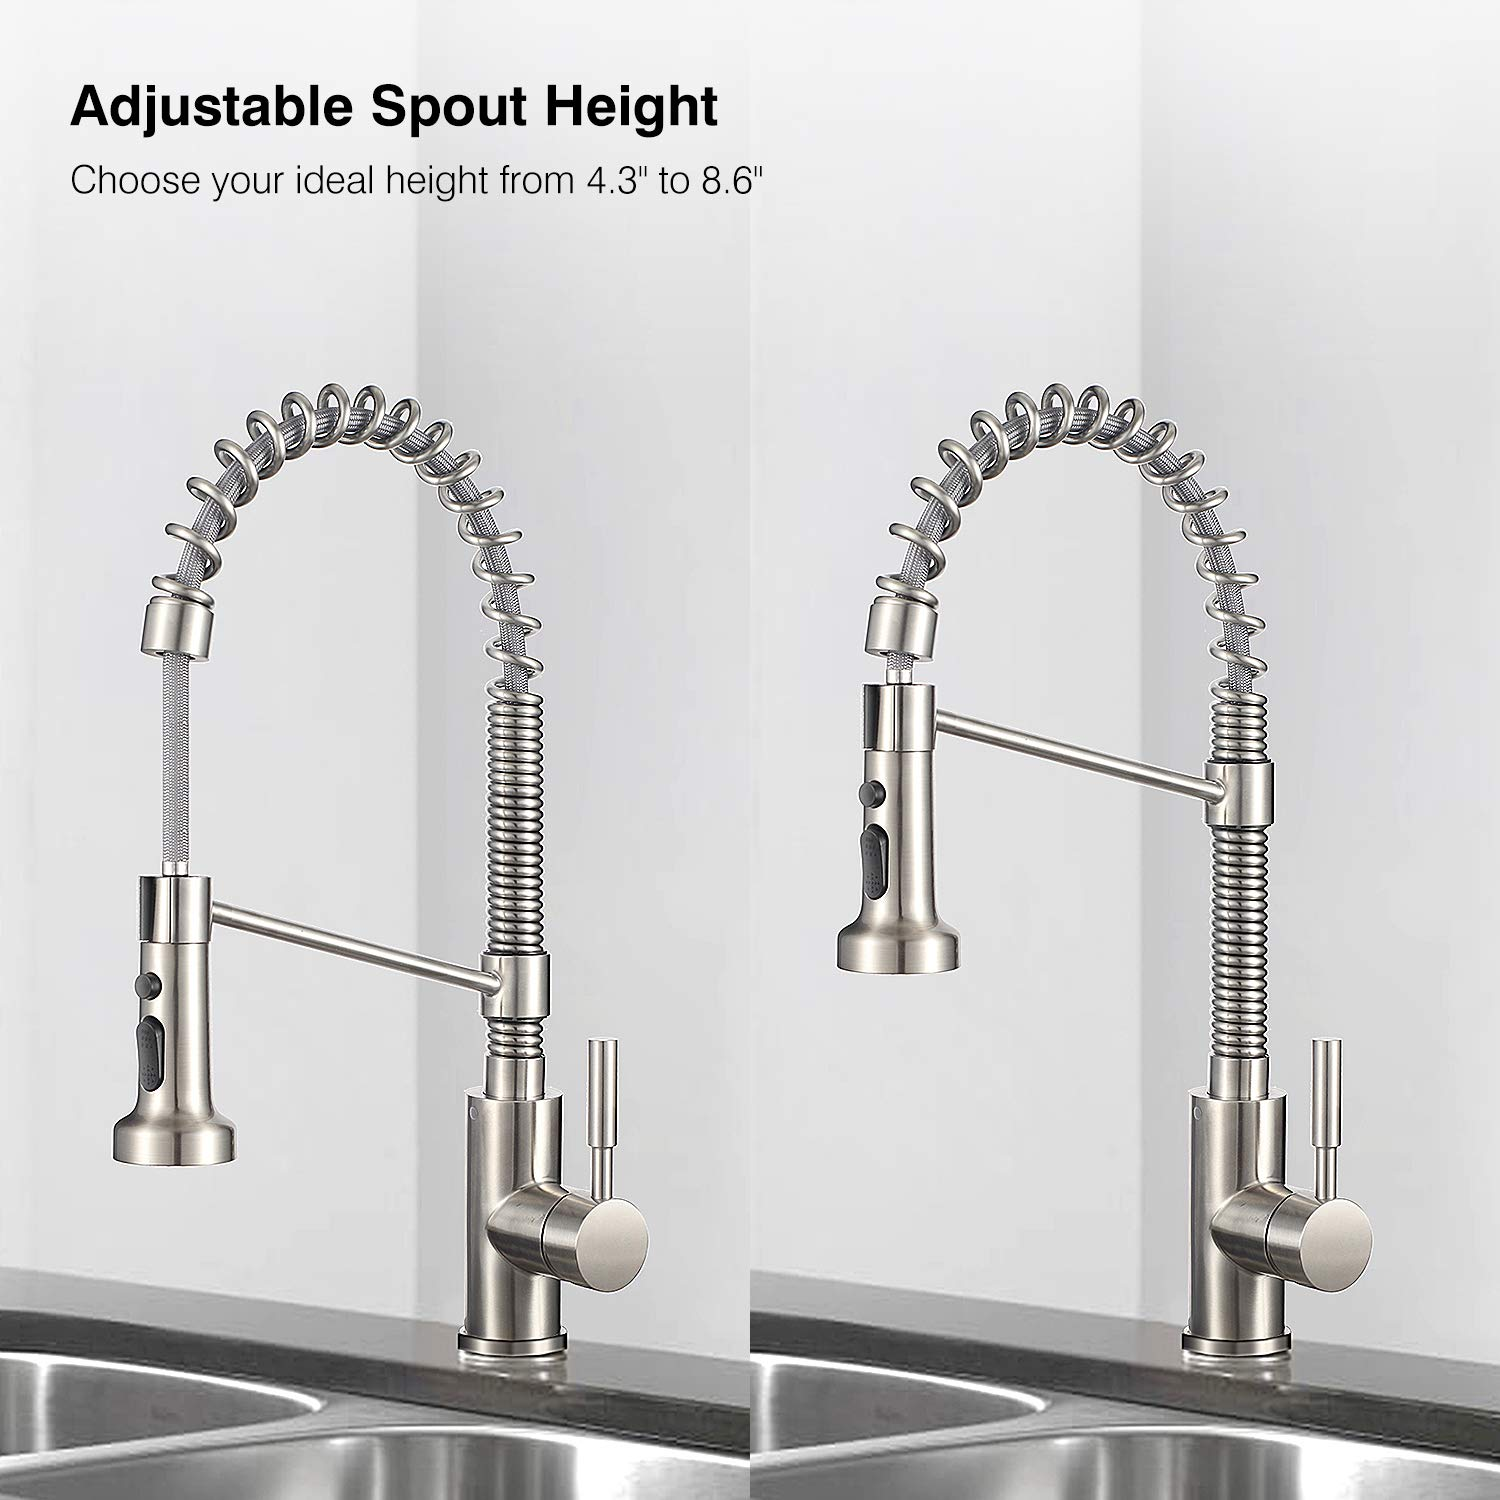 IMLEZON Stainless Steel Kitchen Faucet with Pull Out Spray Head, Single Handle Pull Down Commercial Kitchen Faucet Brushed Finished with Triple Function (18 inch) by IMLEZON (Image #4)